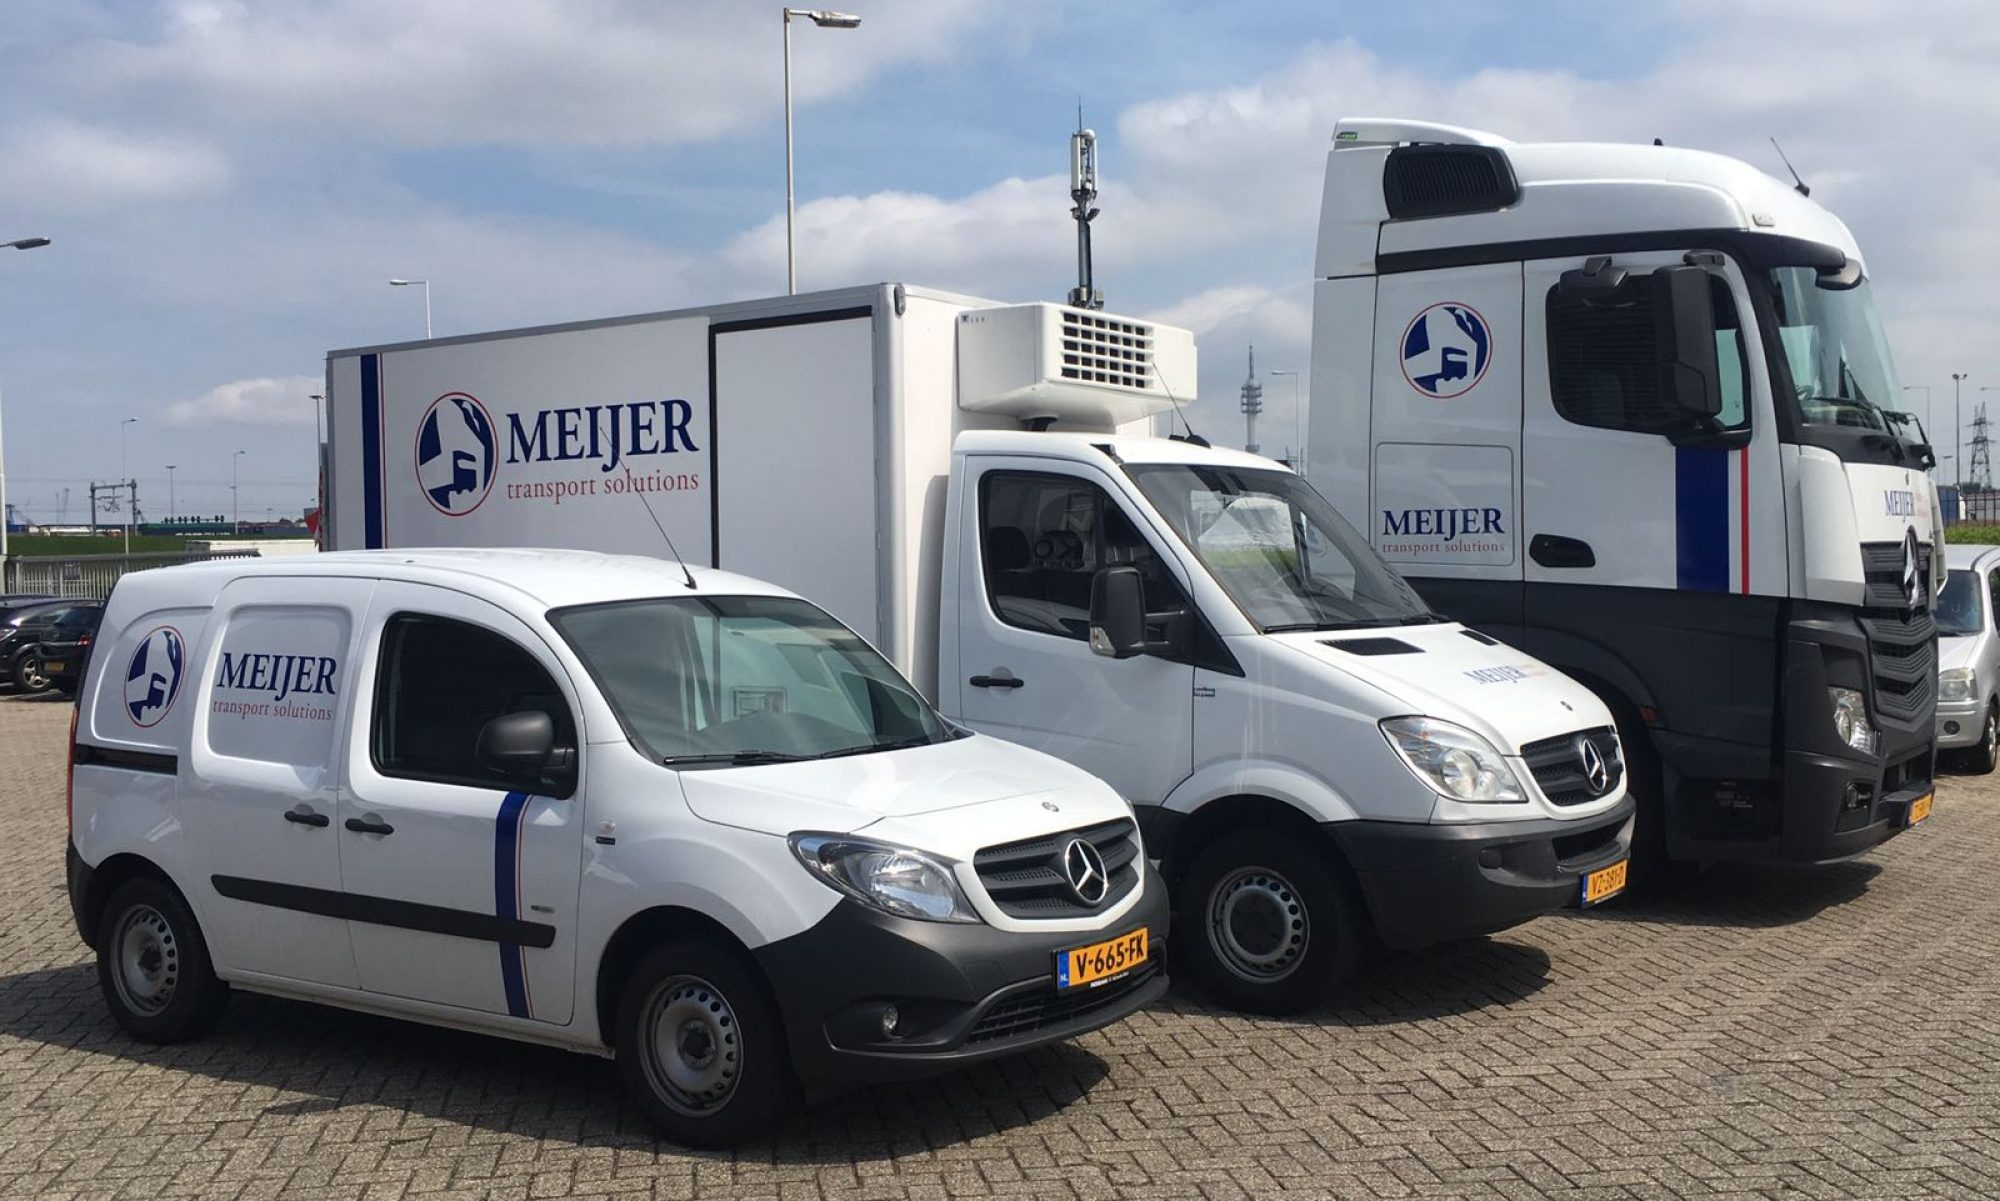 Meijer Transport Solutions